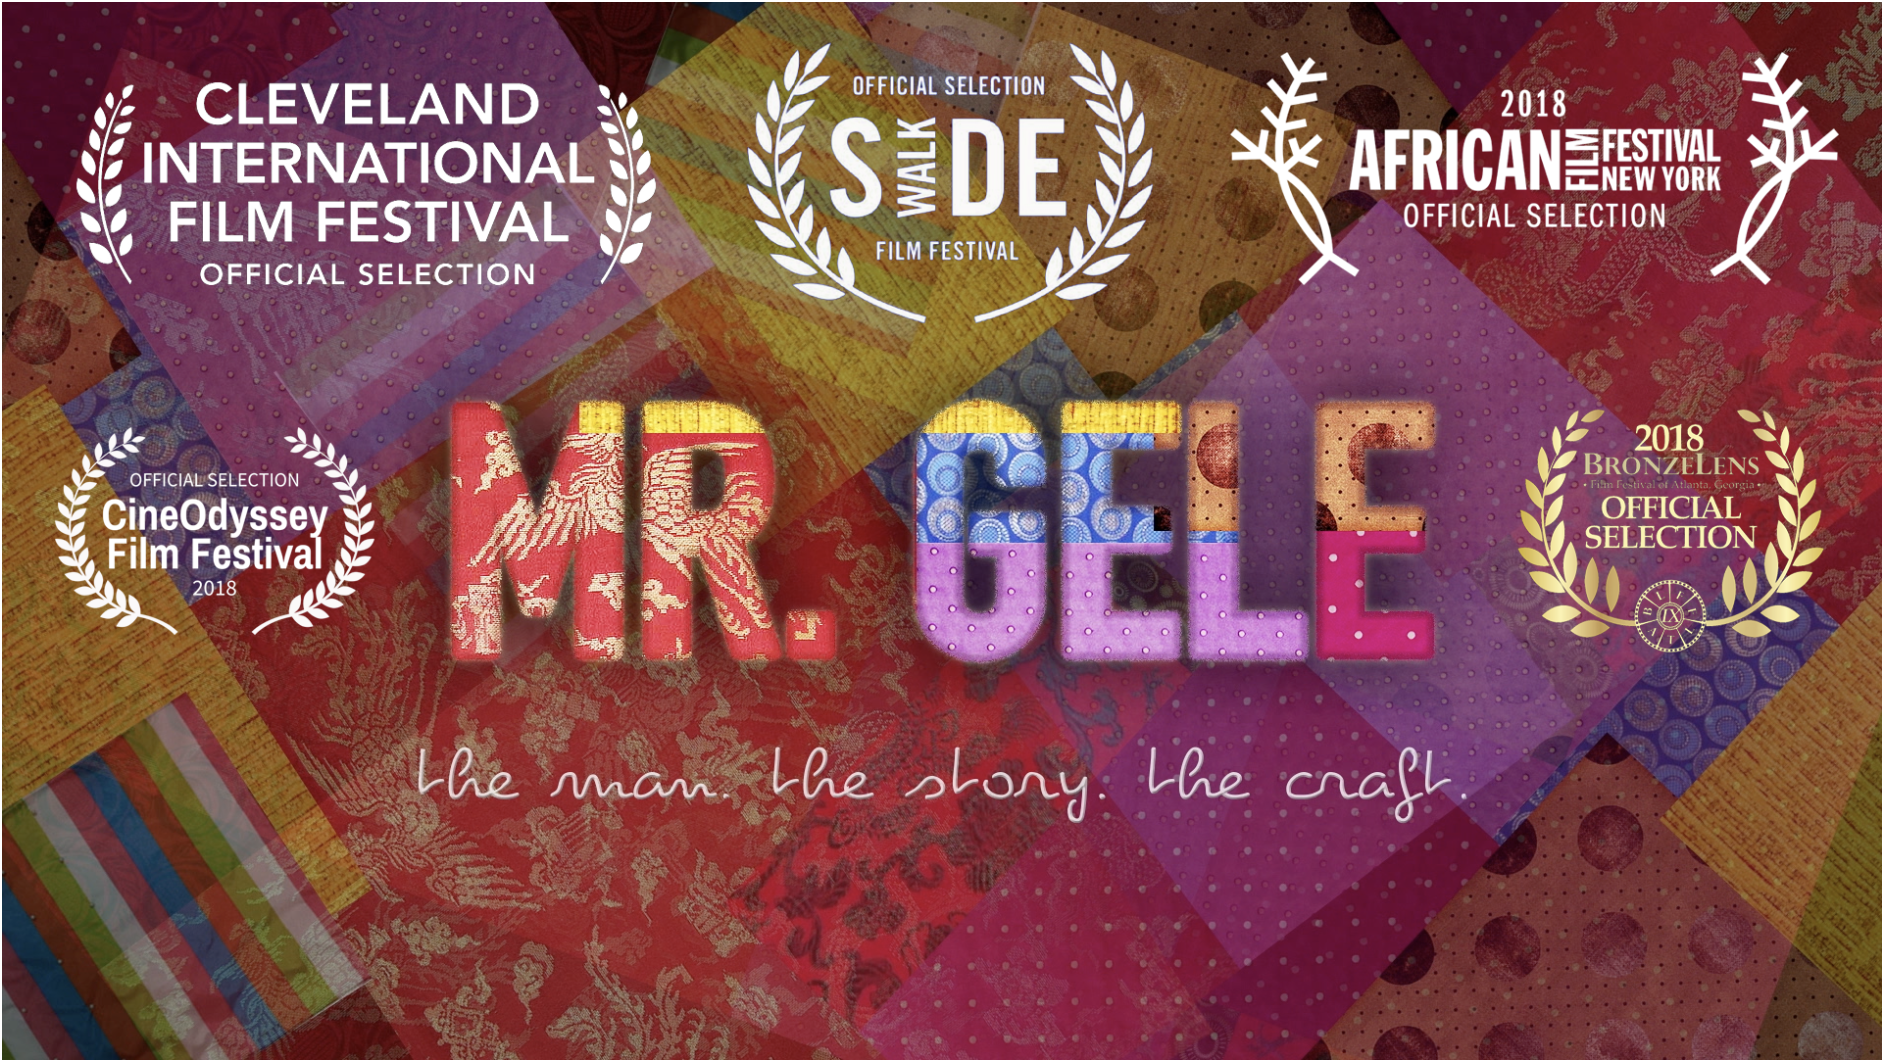 Mr. Gele: The Man, The Story, The Craft (2017)   EDITOR, TITLE DESIGN